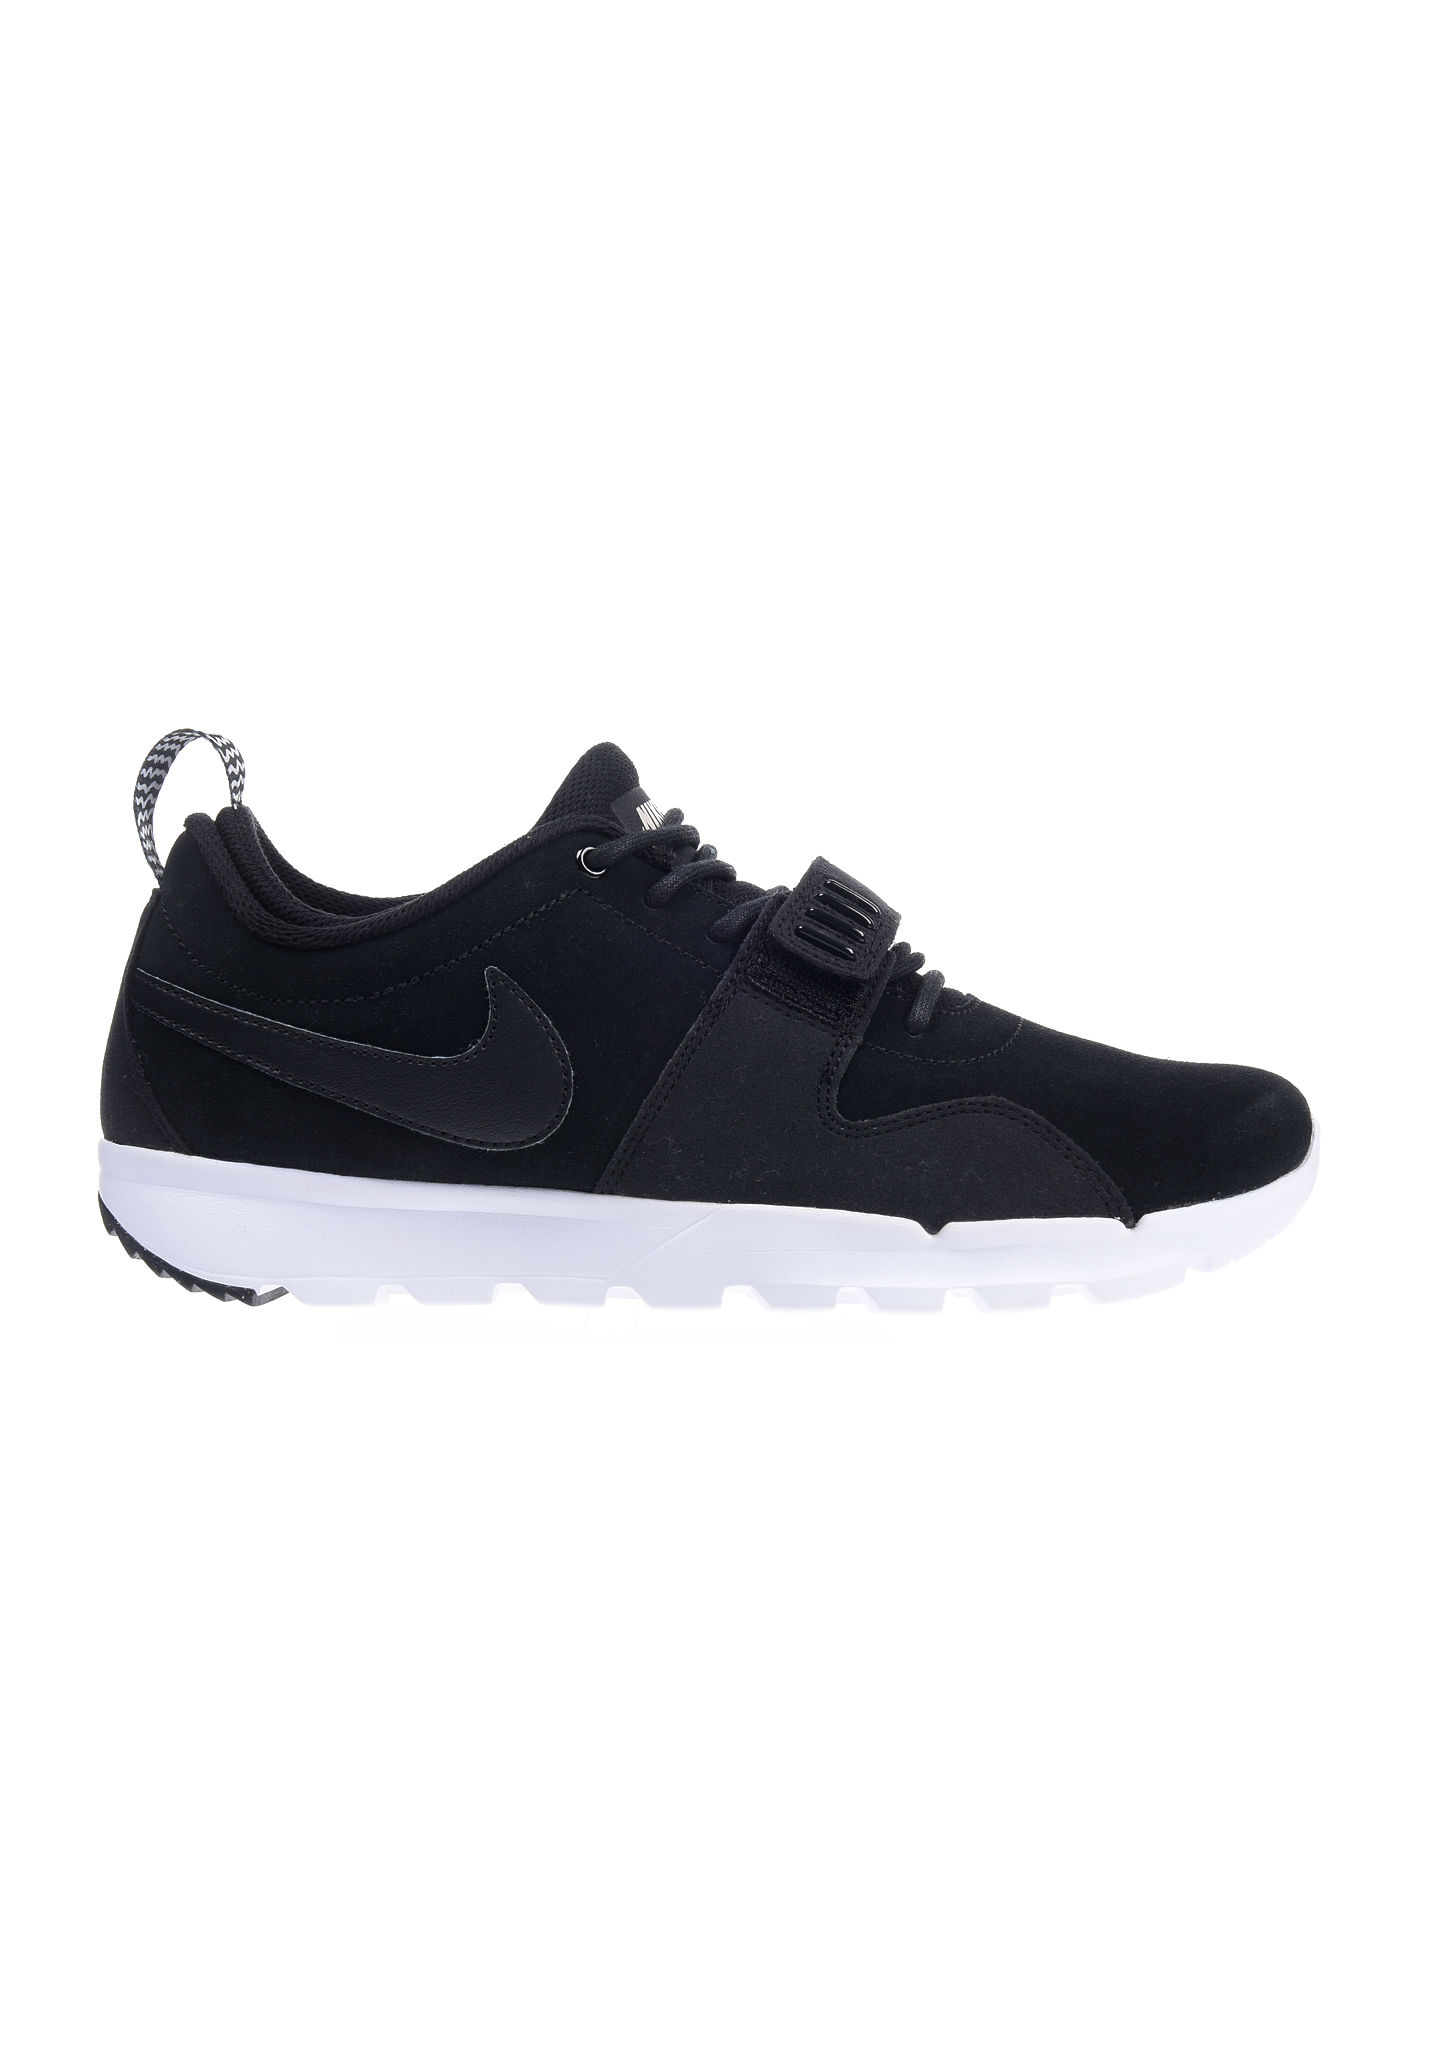 timeless design c7aac 5a600 NIKE SB Trainerendor L - Sneakers for Men - Black - Planet Sports